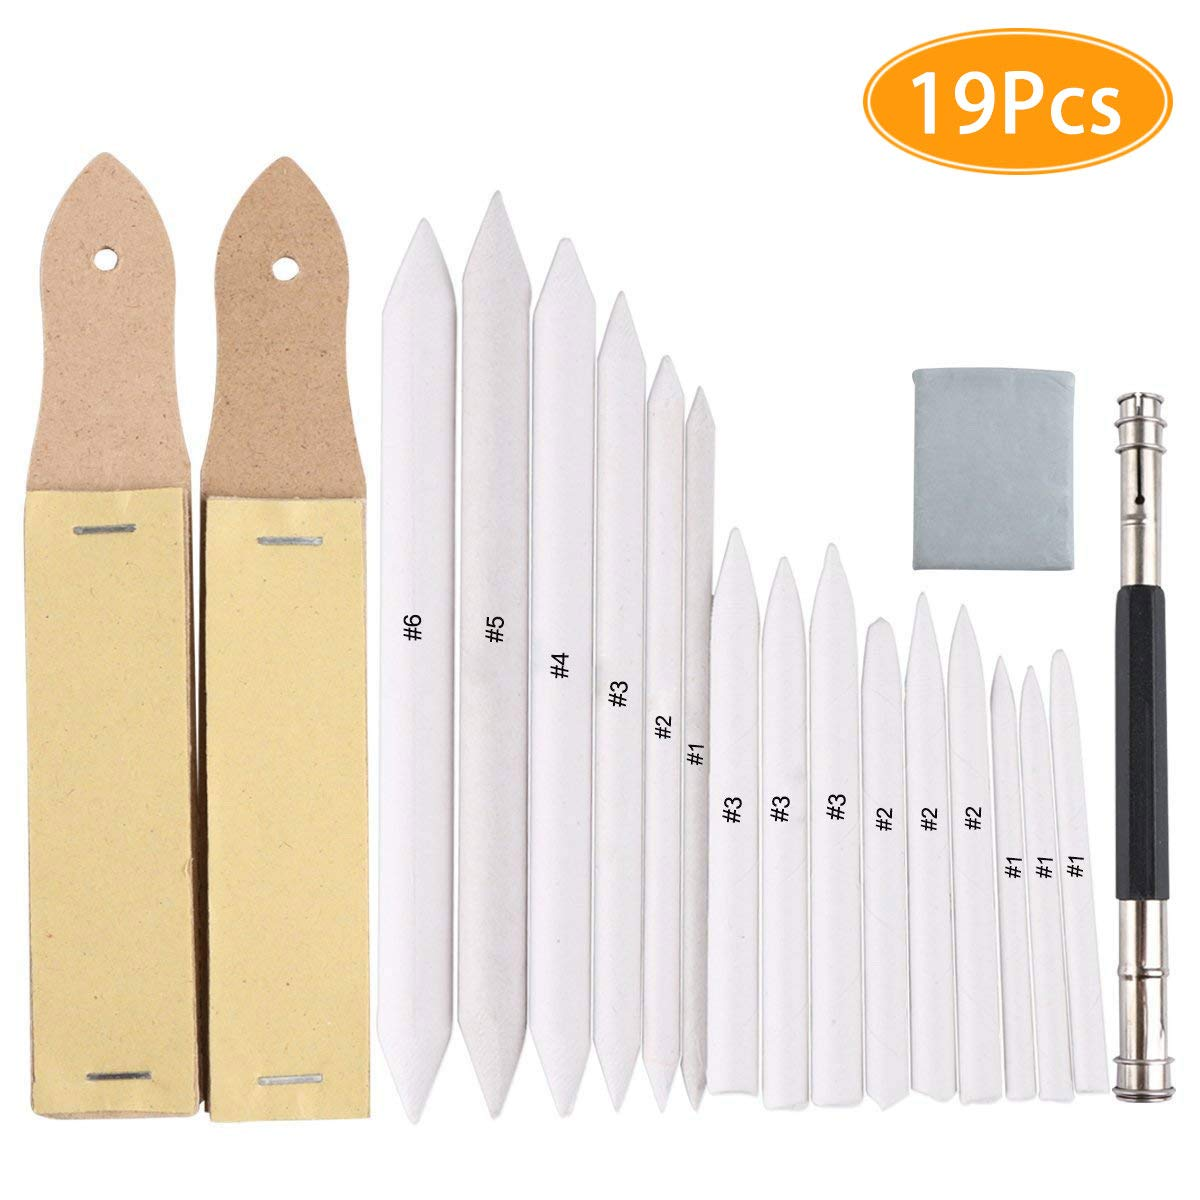 eBoot 12 Pieces Blending Stumps and Tortillions Set with 2 Pieces Sandpaper Pencil Sharpener for Student Sketch Drawing